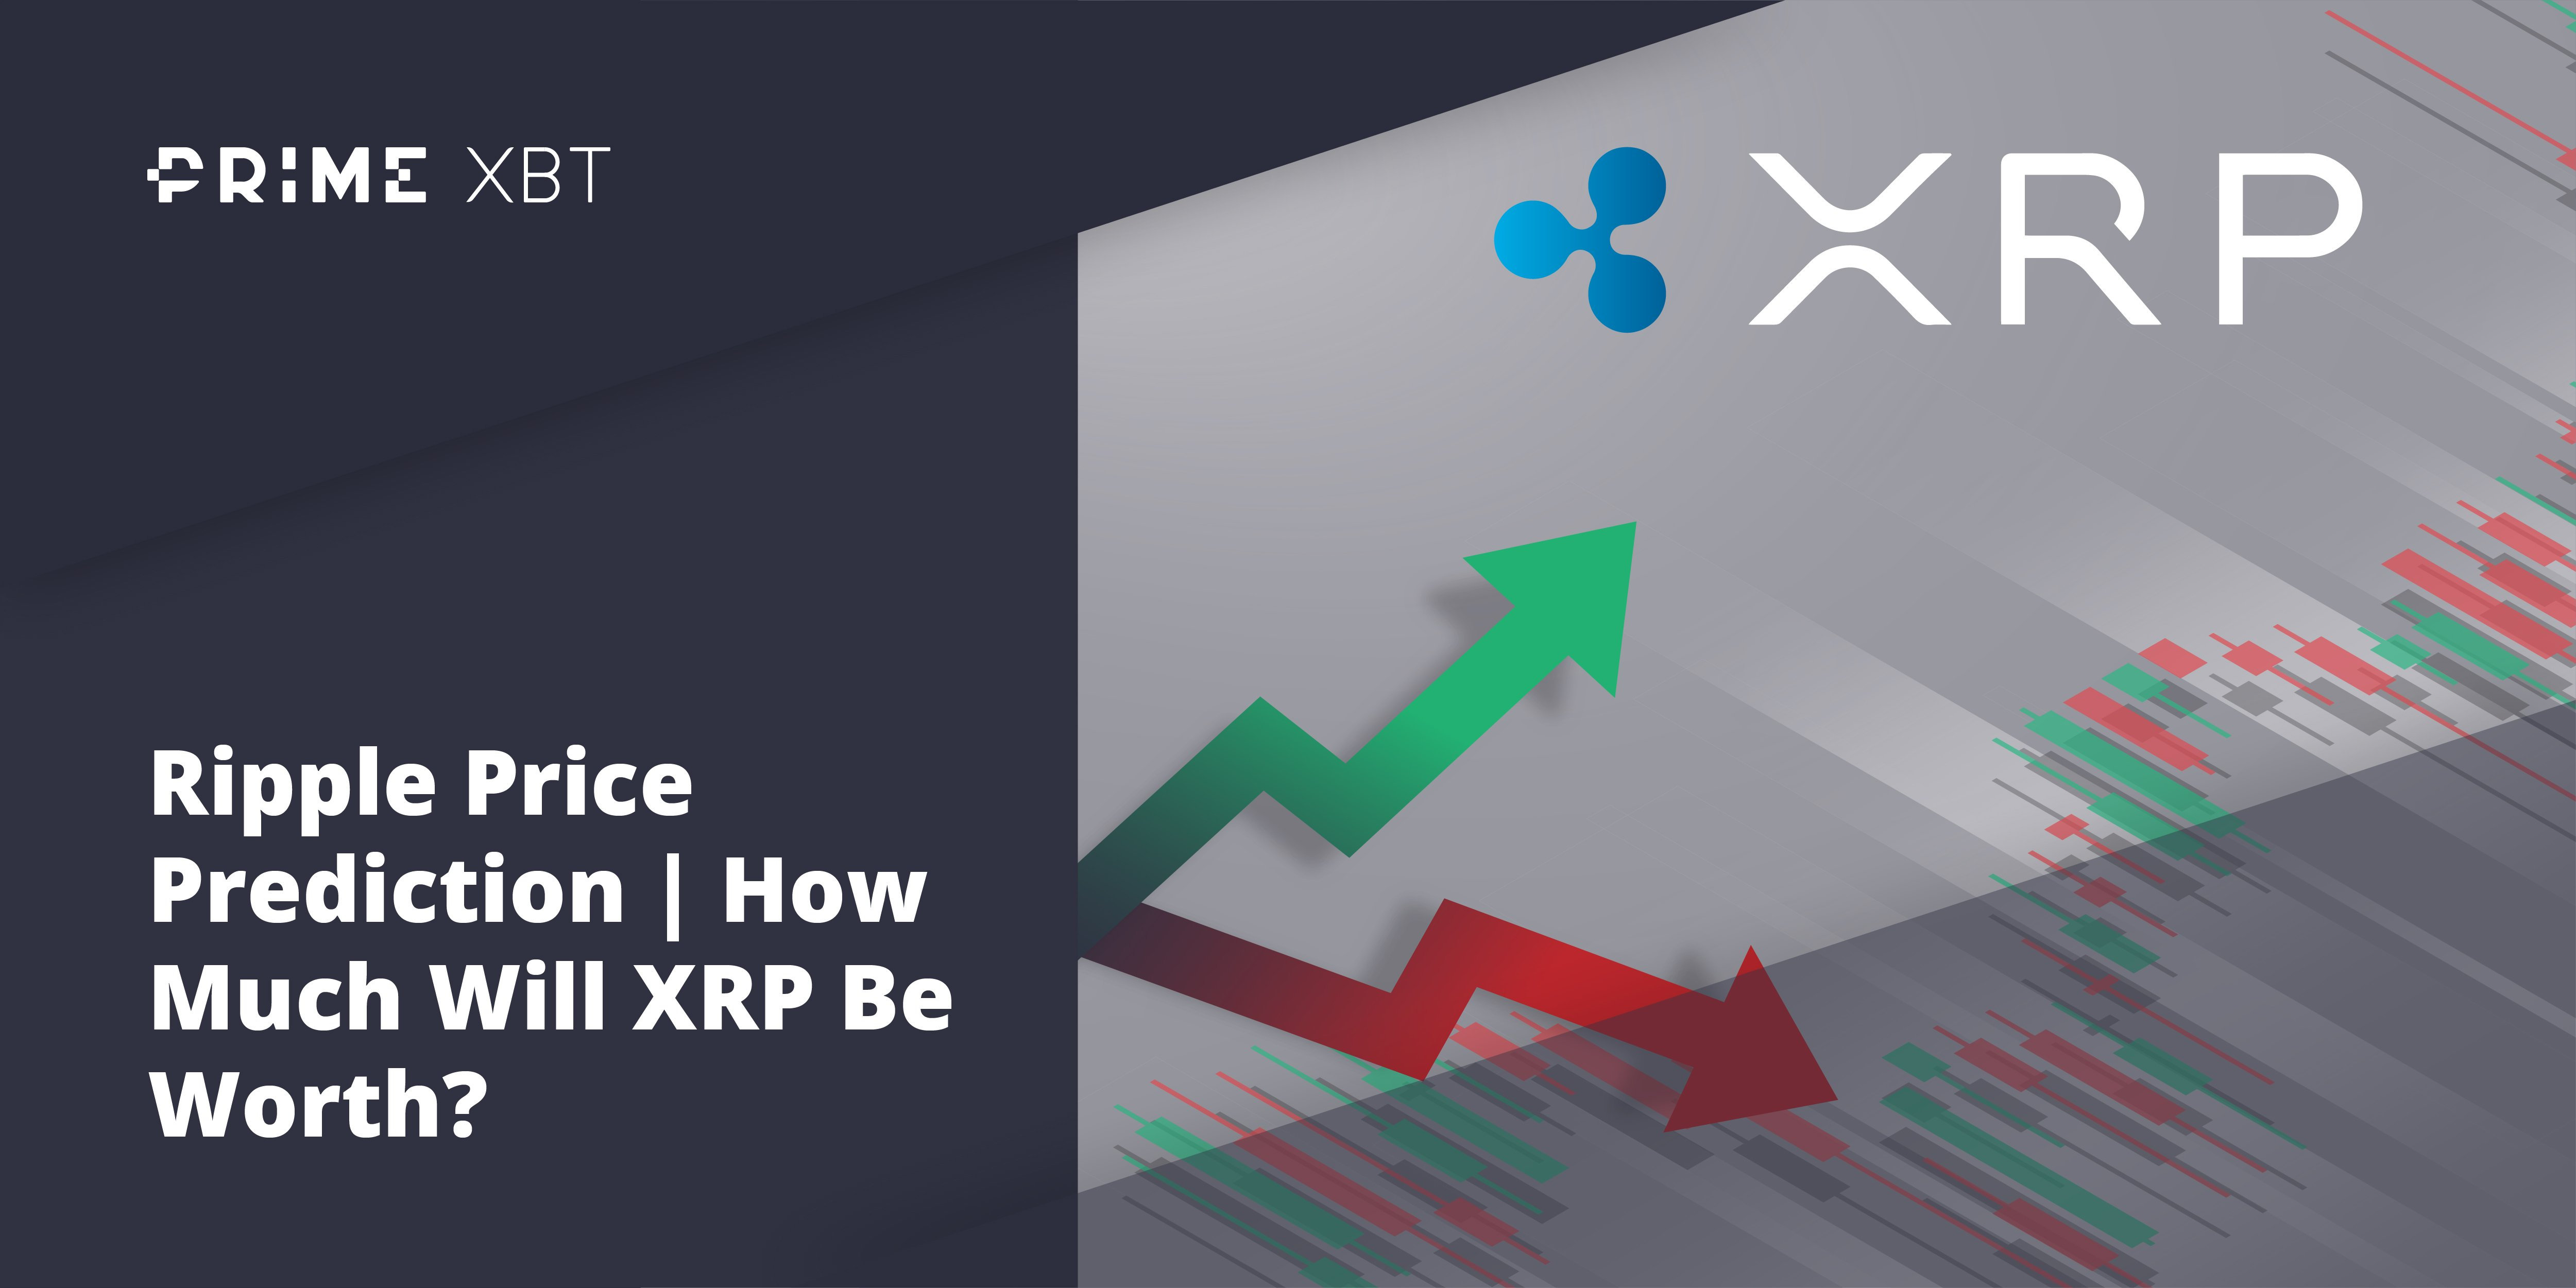 Ripple Price Prediction | How Much Will XRP Be Worth? - xrp 1